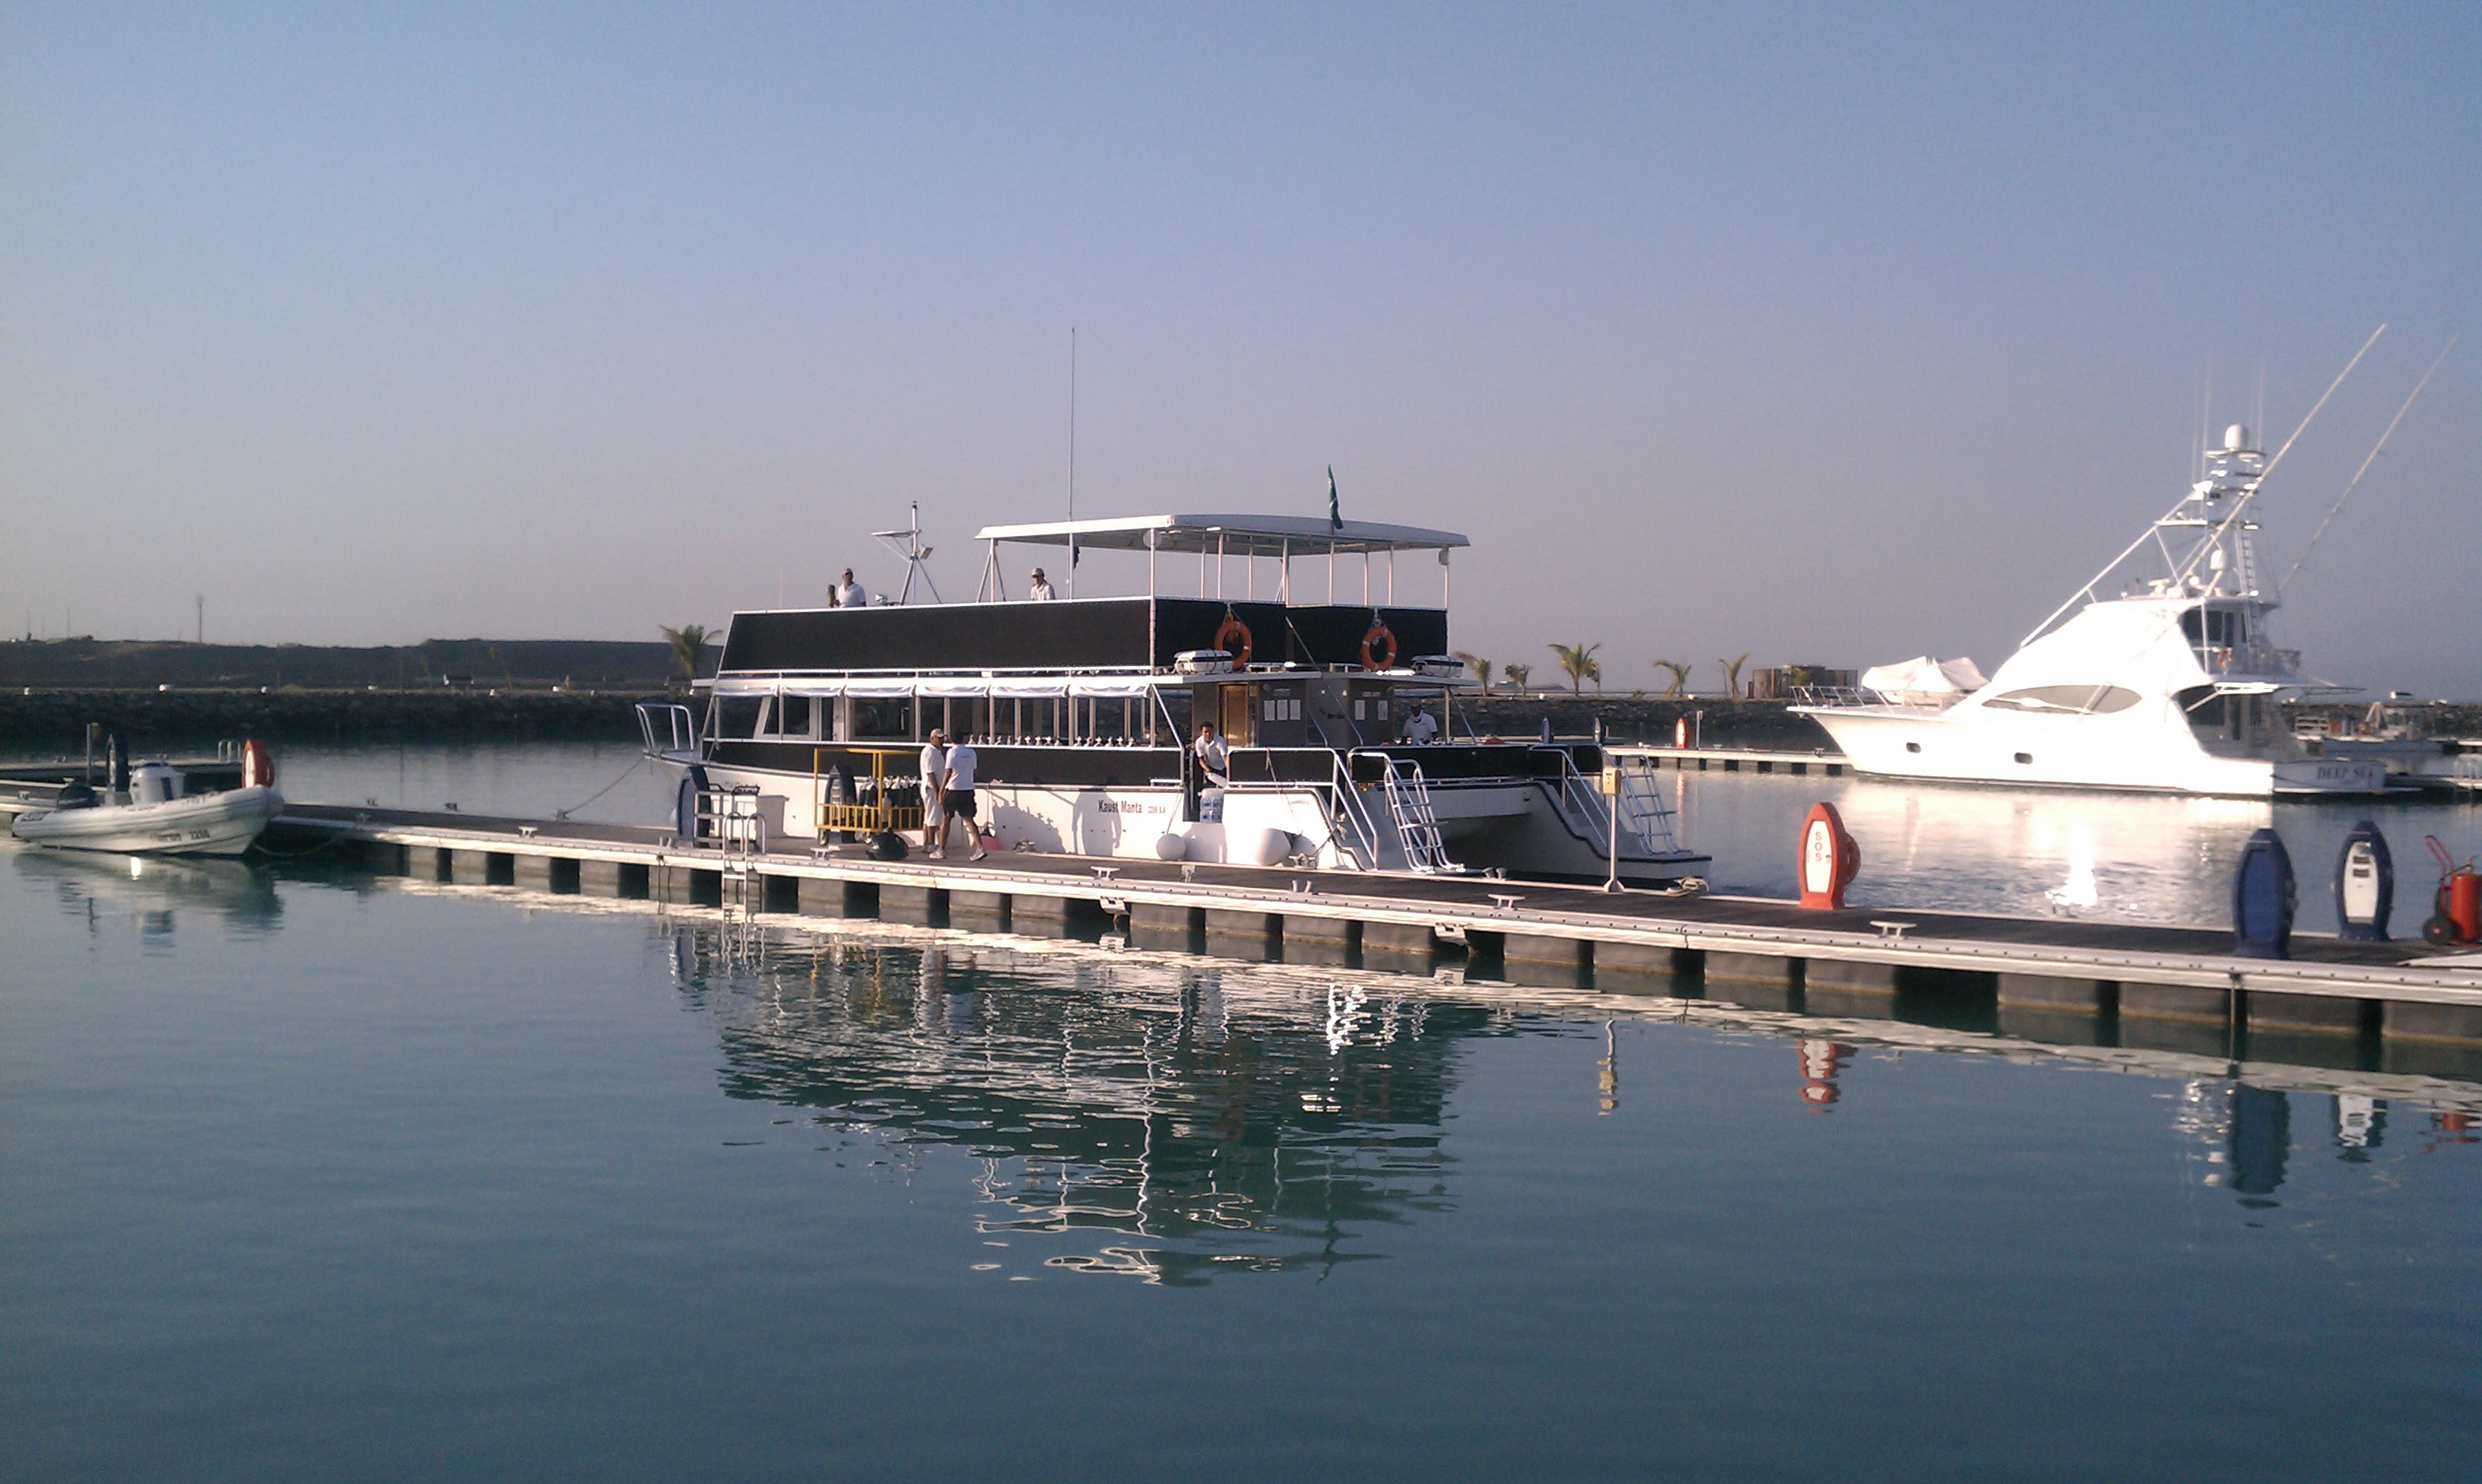 File:KAUST pontoon boat.jpg - Wikimedia Commons